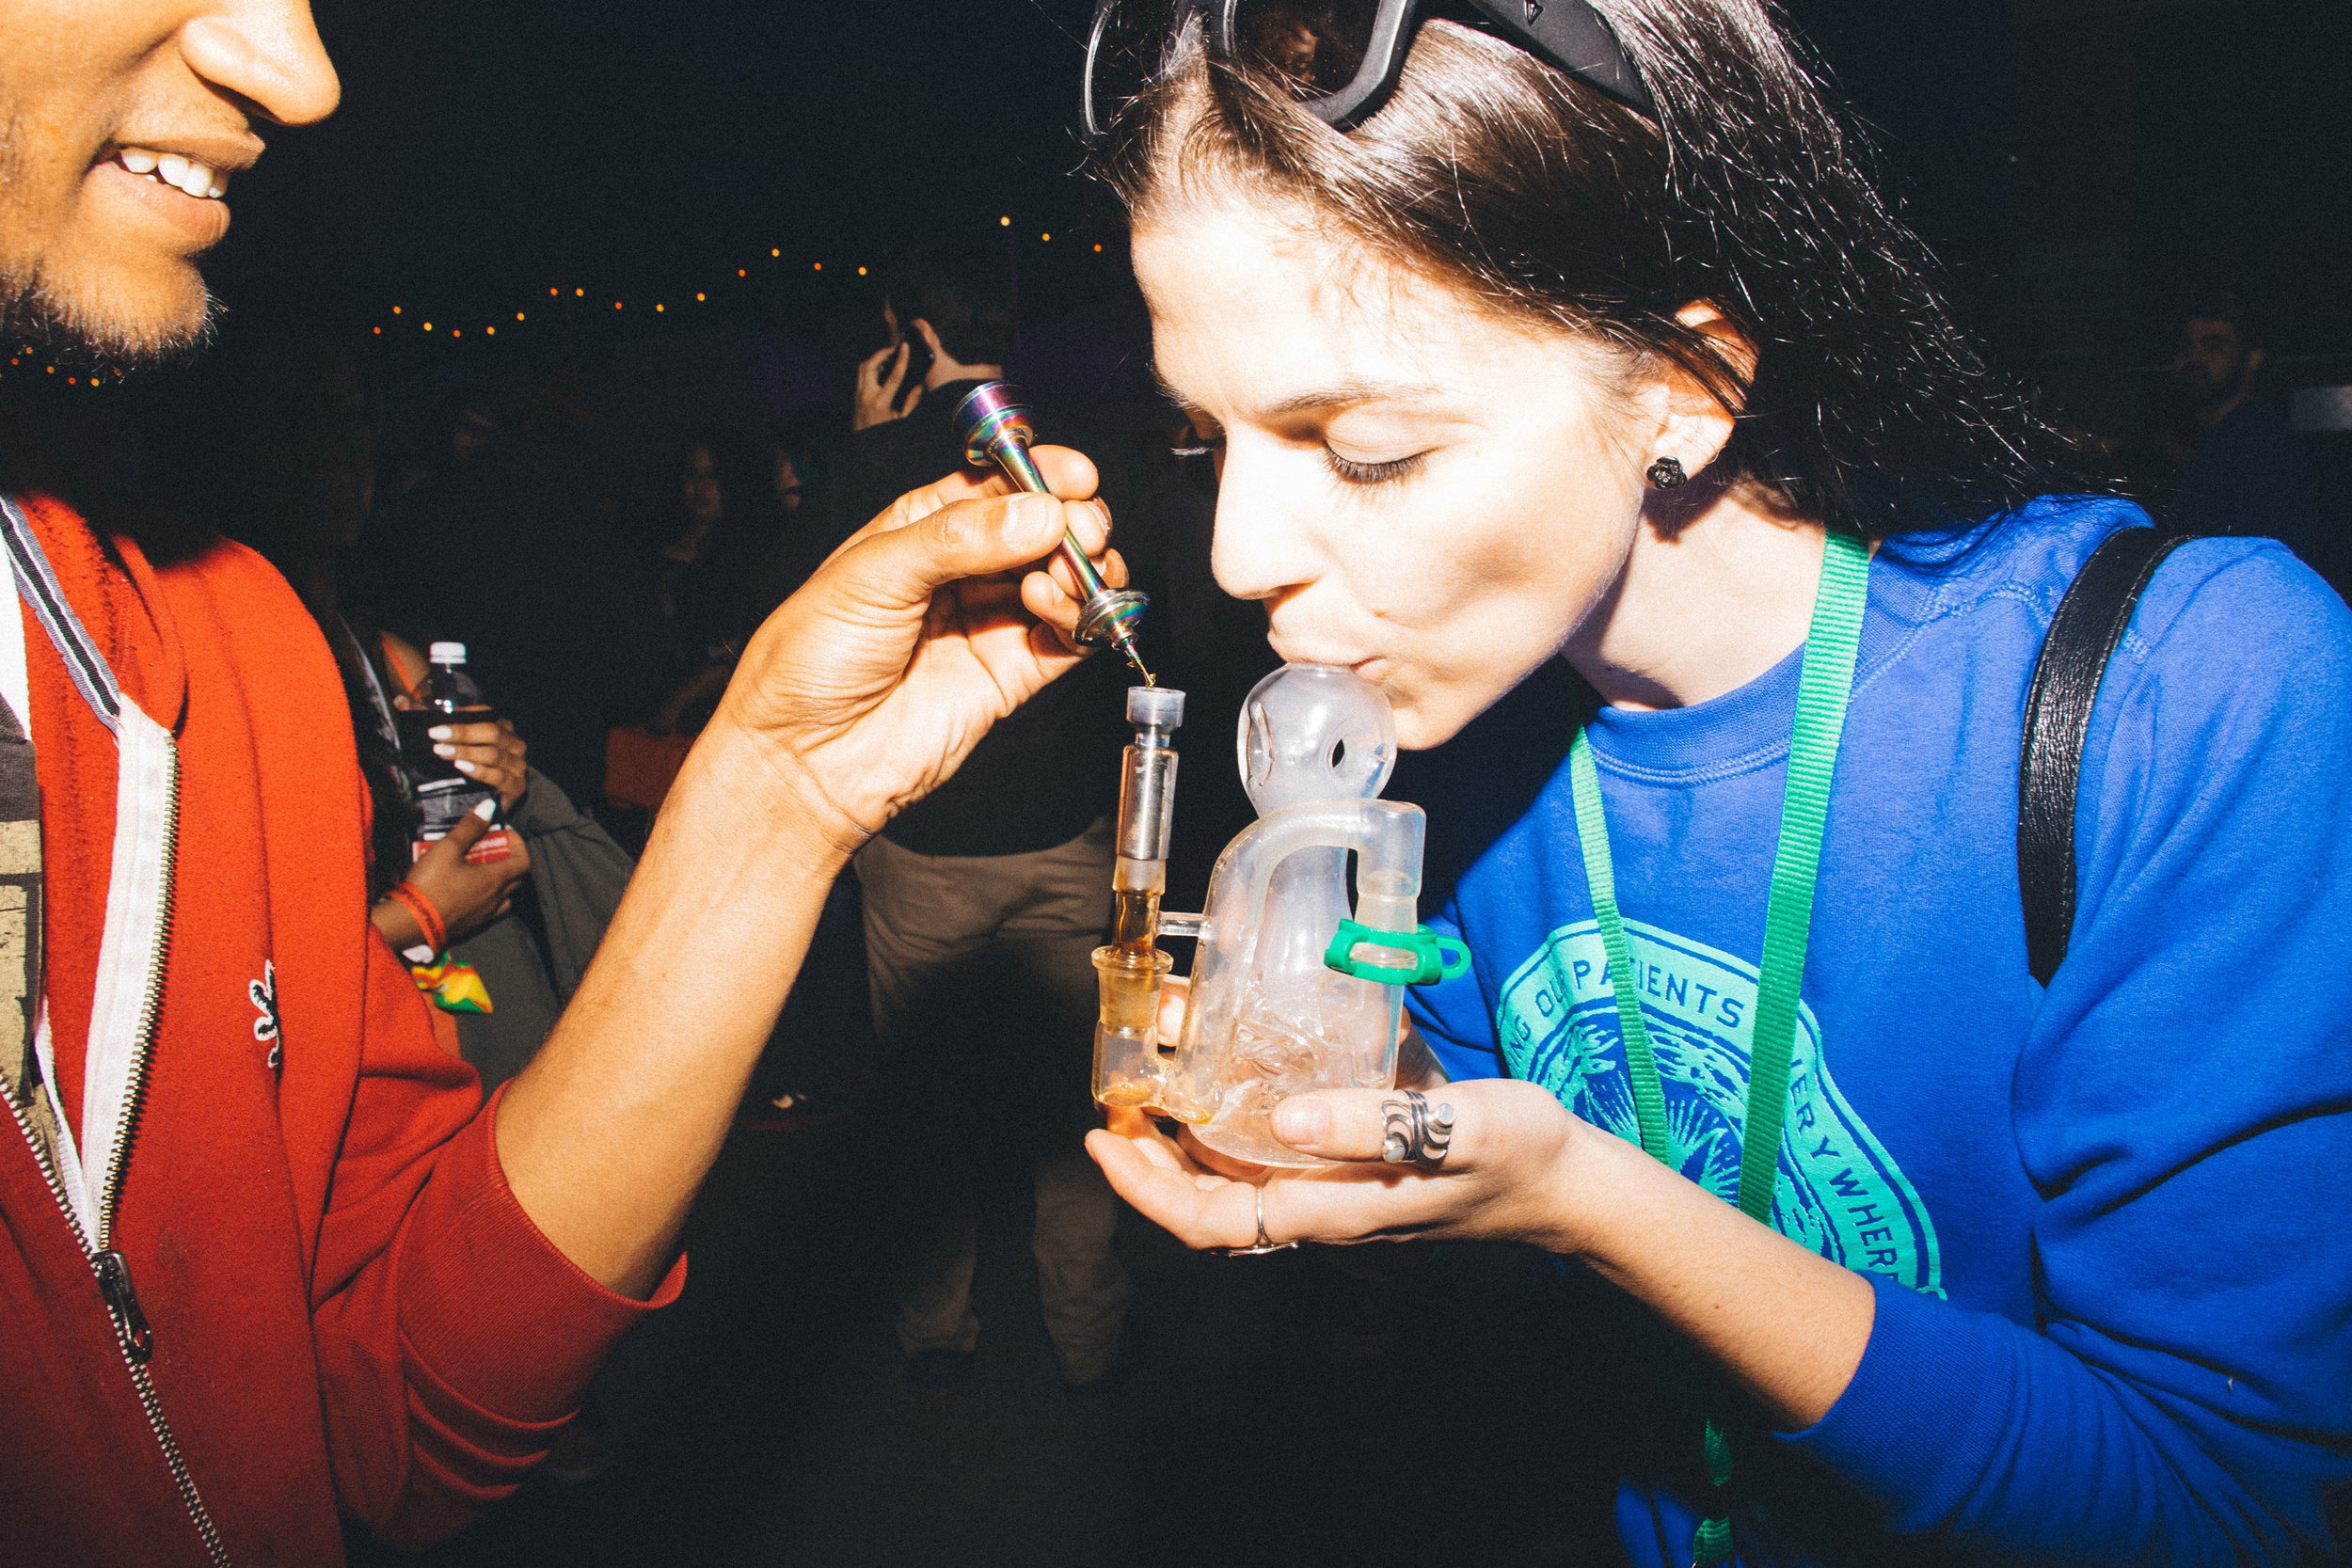 Western-Cultured-DOPE-Cup-Cannabess-8.jpg